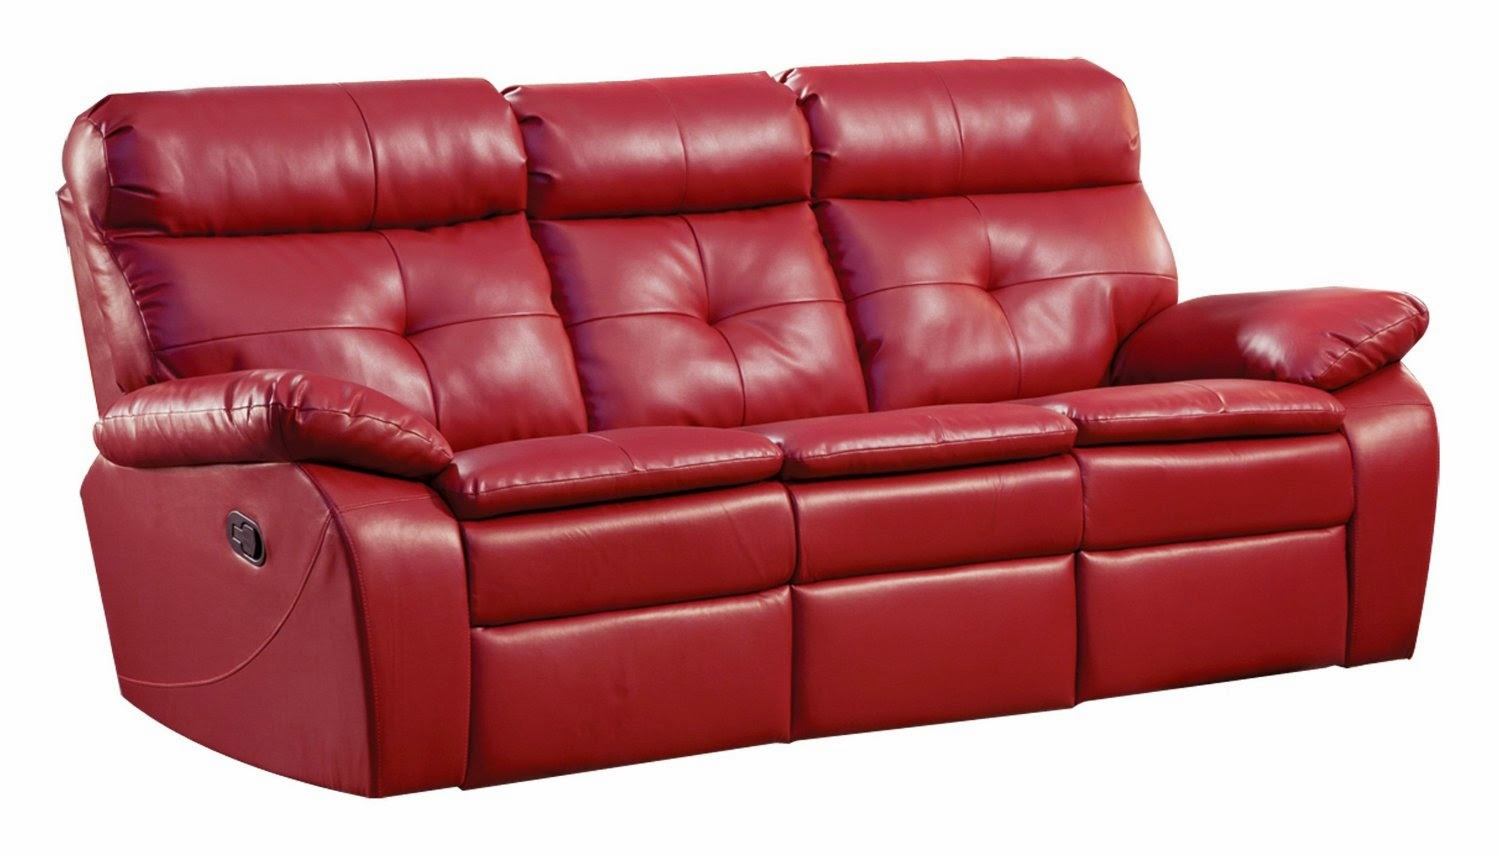 Reclining Loveseat Sale Red Reclining Sofa And Loveseat: reclining loveseat sale